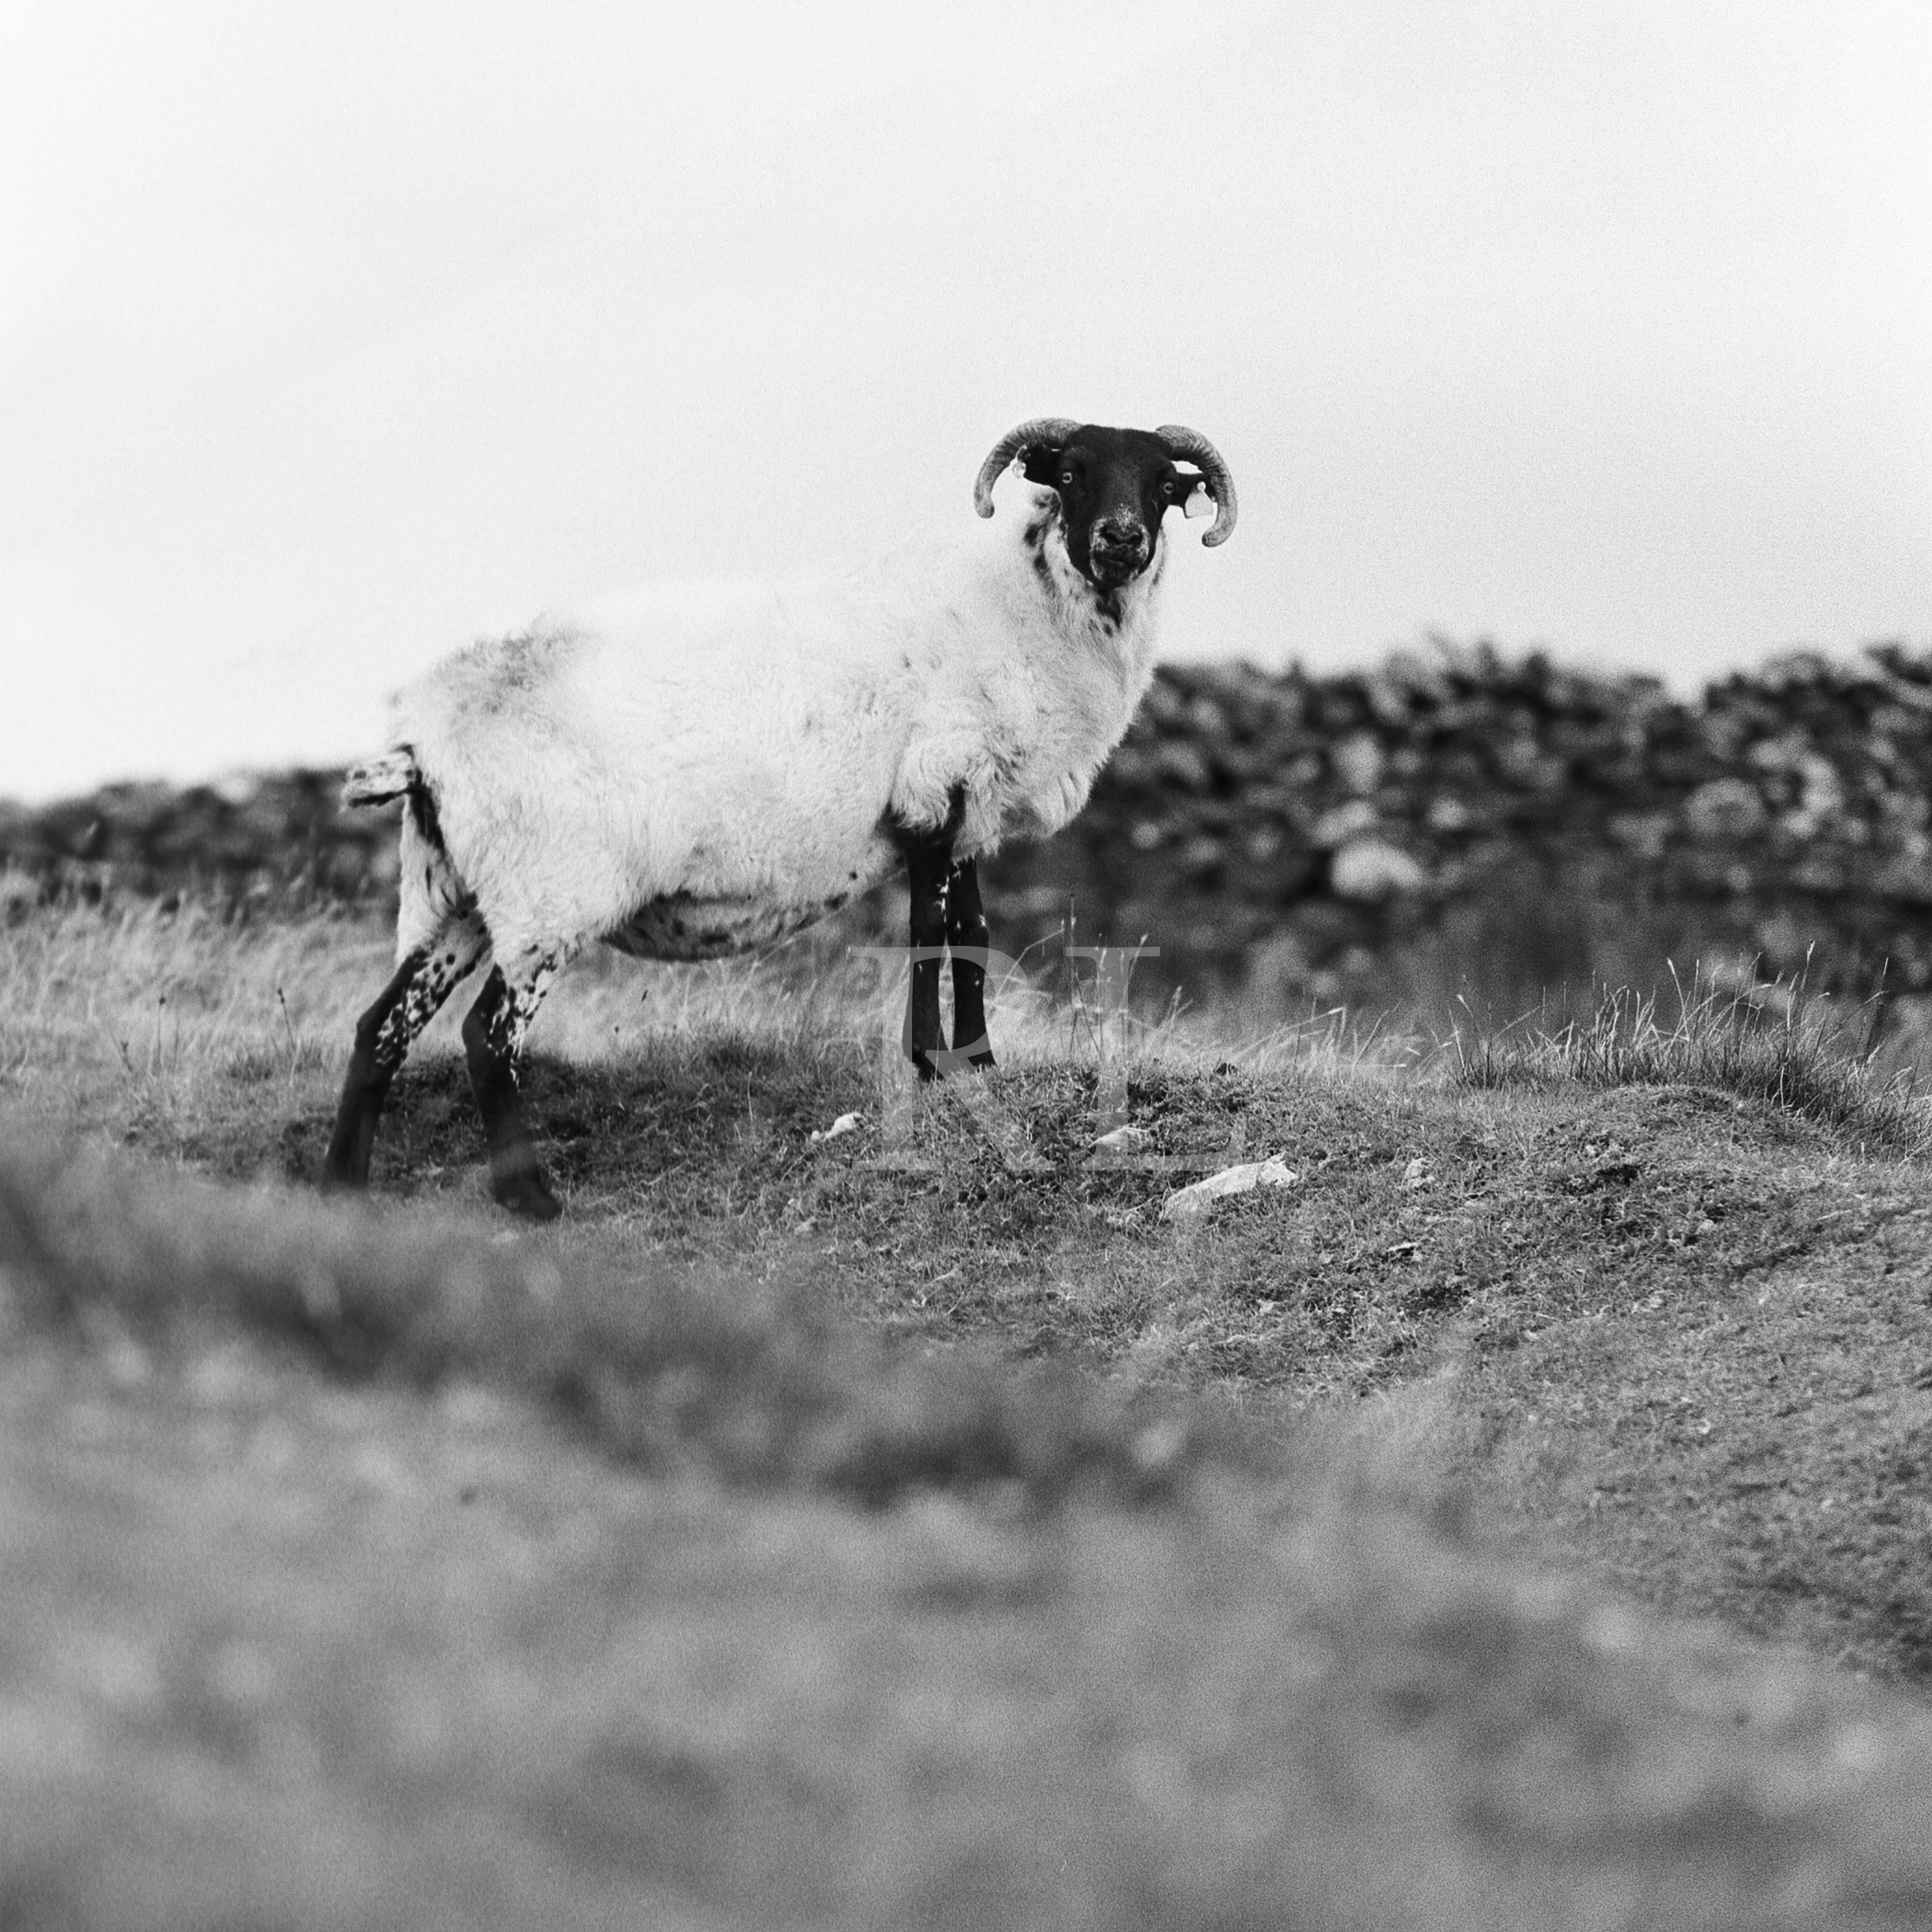 A Ram on clare Island_WM.jpg